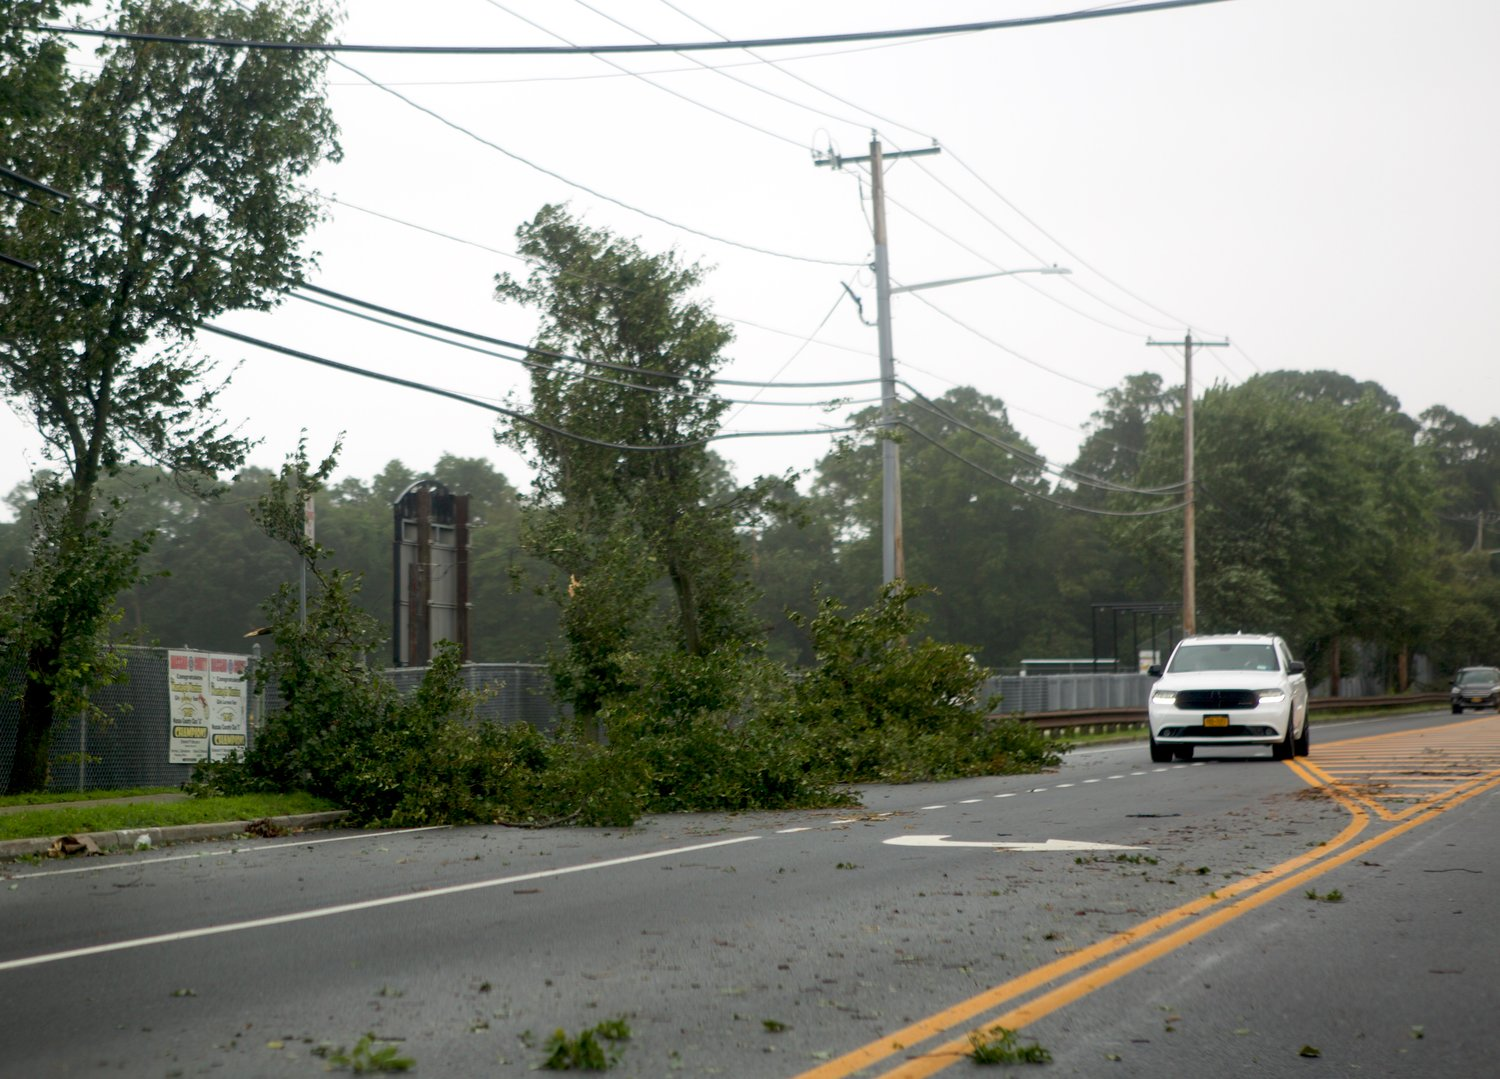 A car maneuvered past a fallen tree on Jerusalem Avenue, just north of Wantagh High School. High winds from Isiasis toppled trees across the Wantagh-Seaford area.